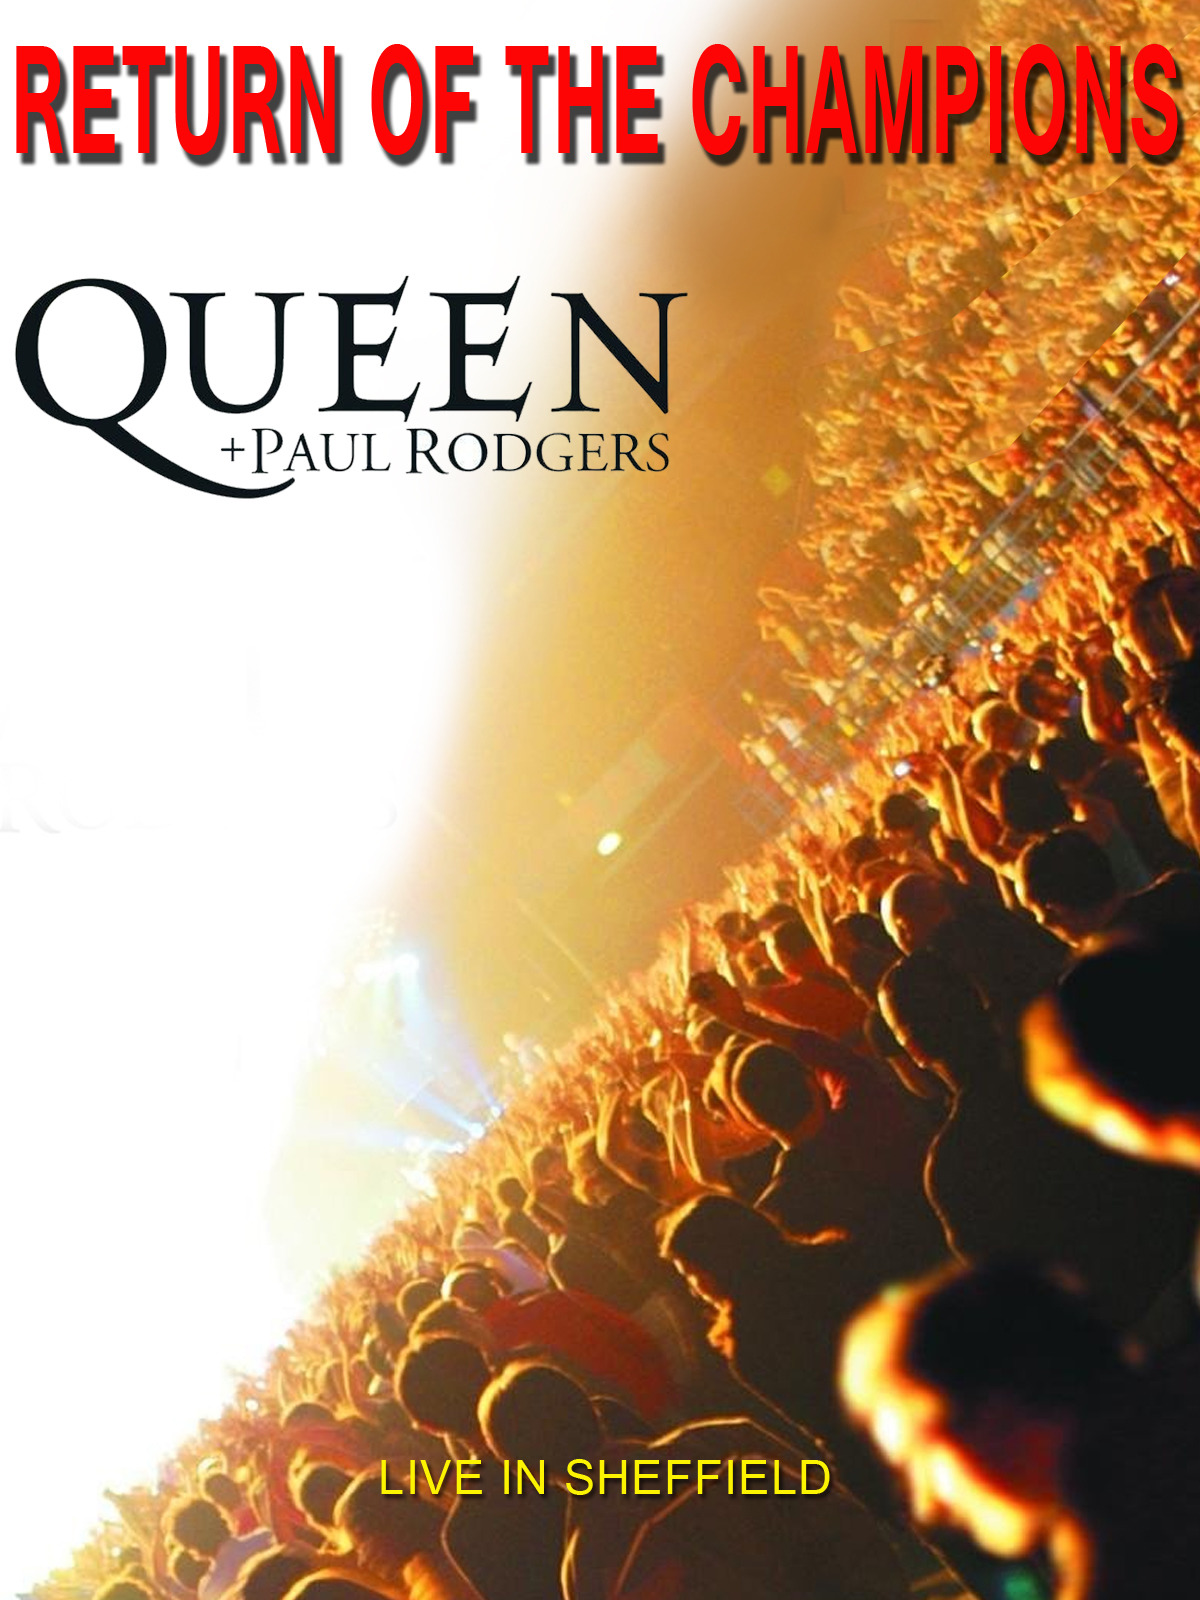 Queen + Paul Rodgers - Return Of The Champions [OV]